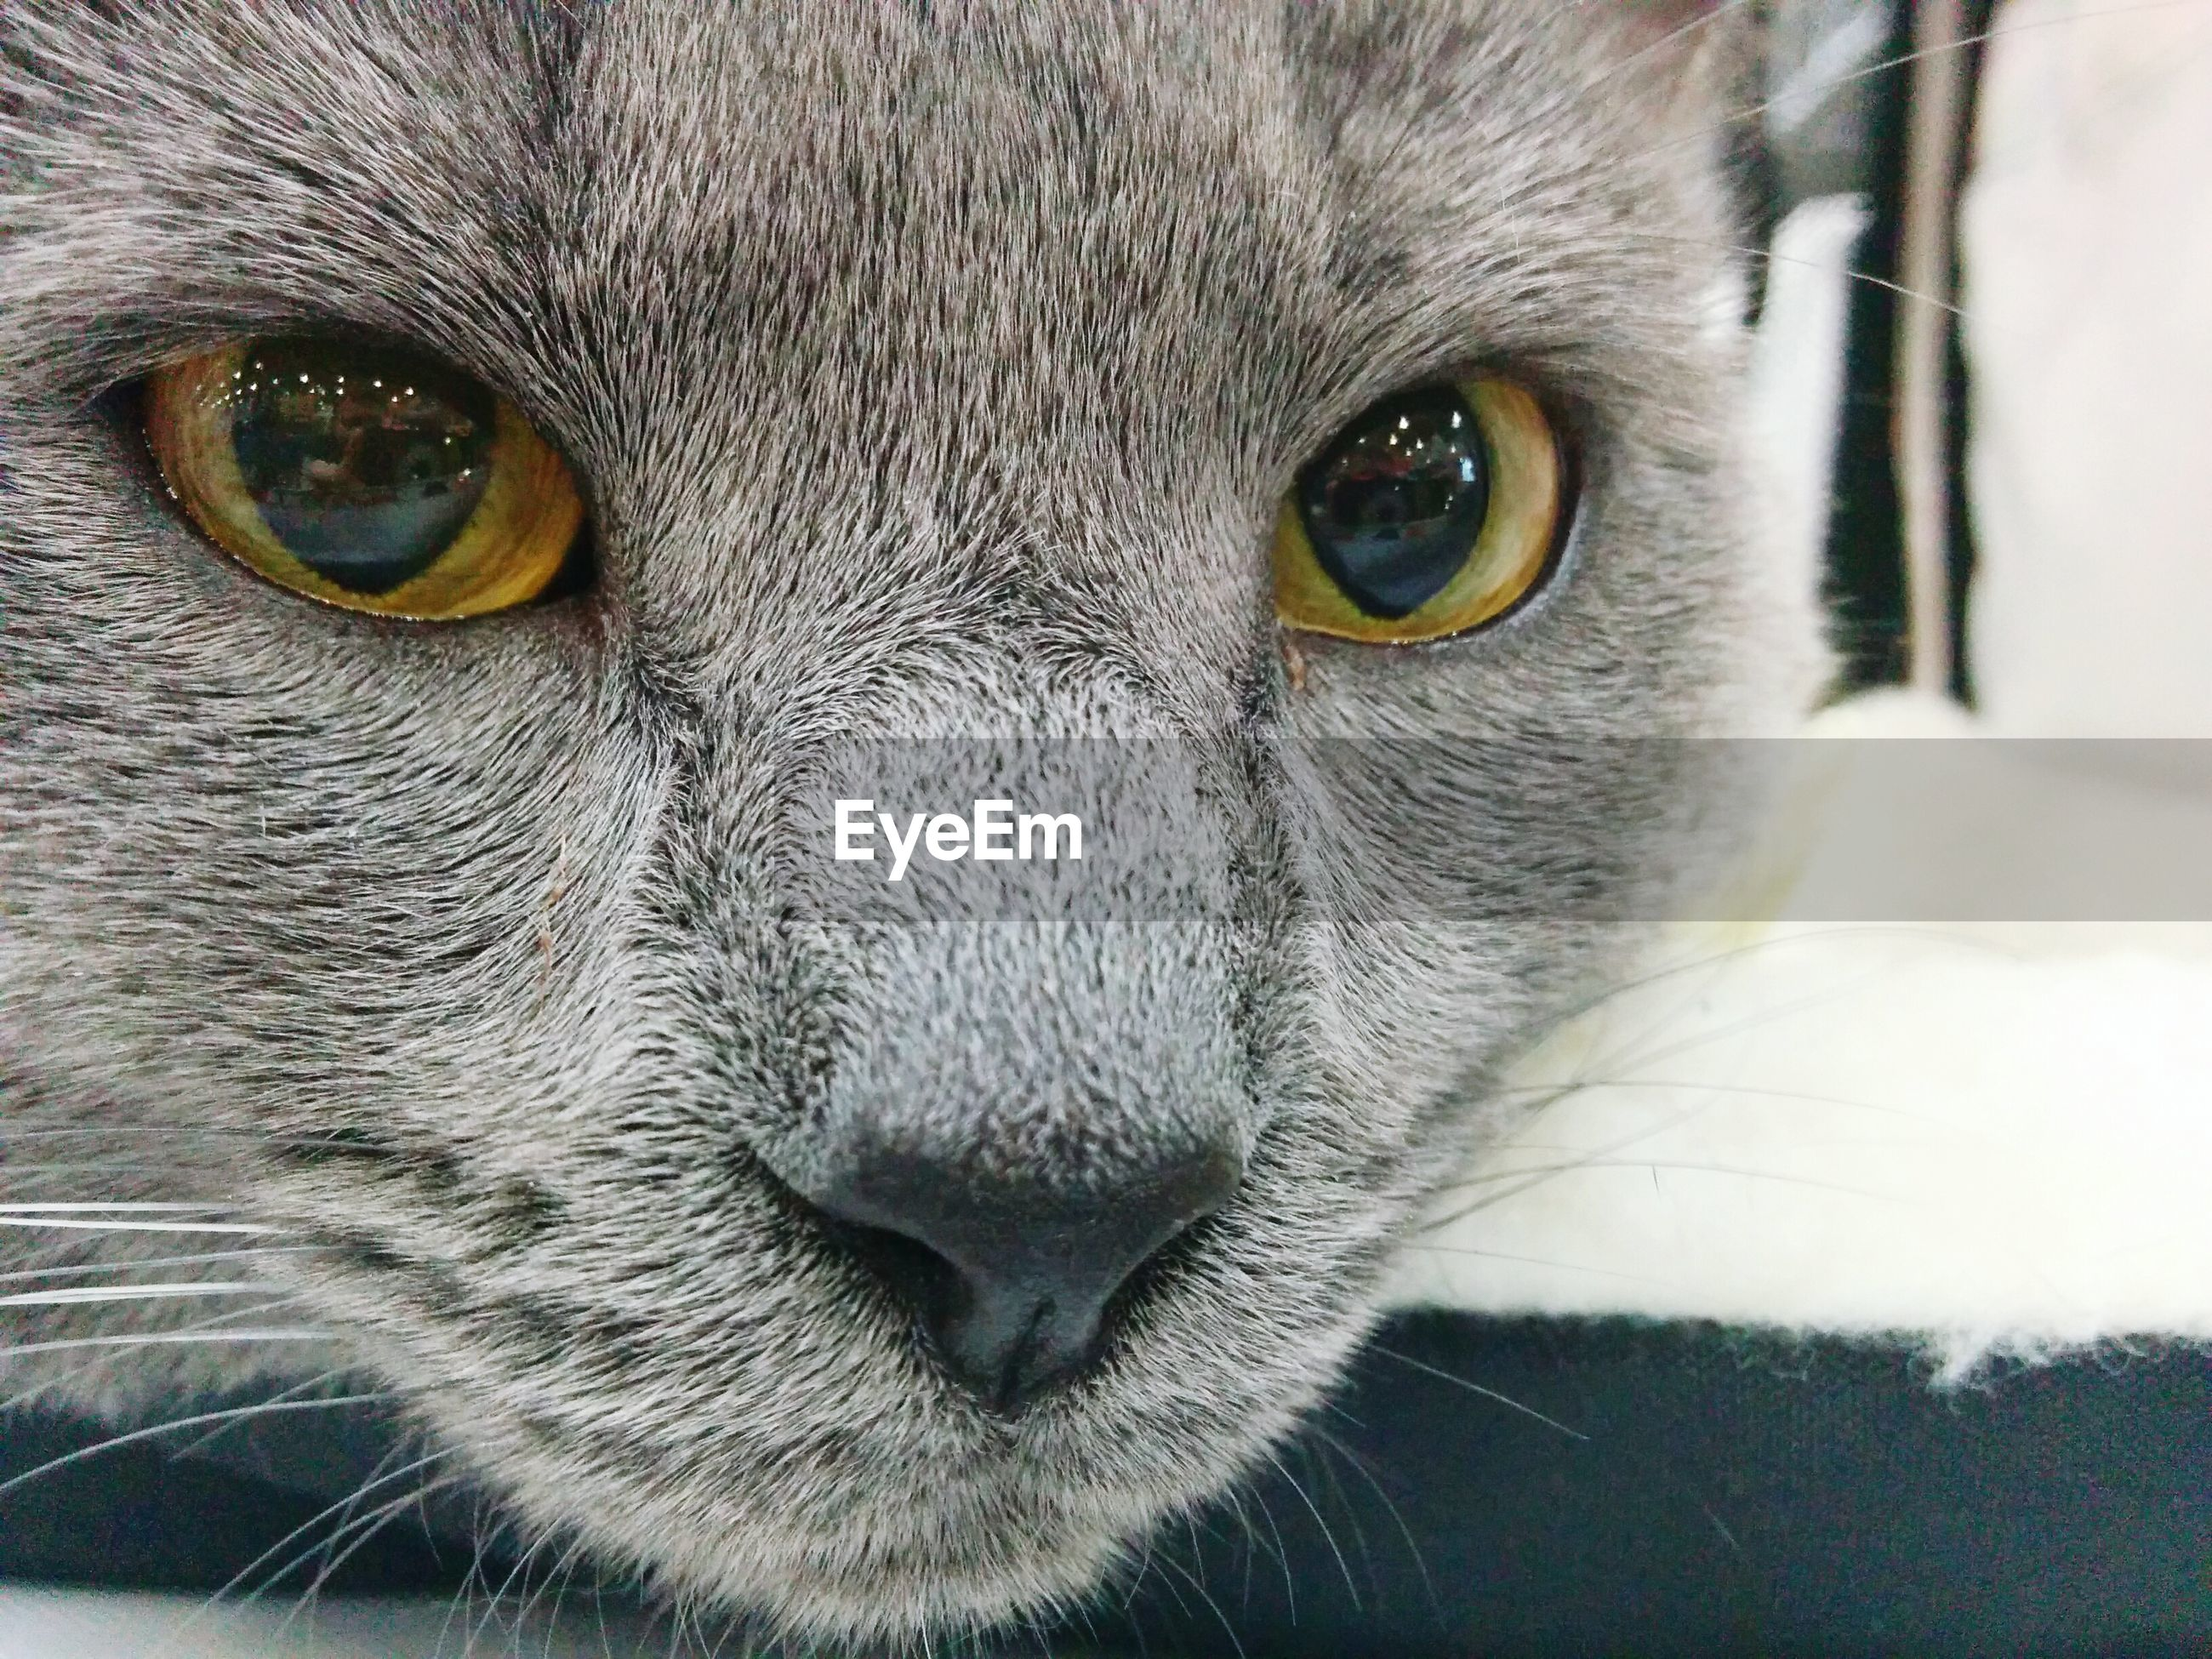 Extreme close up of cat